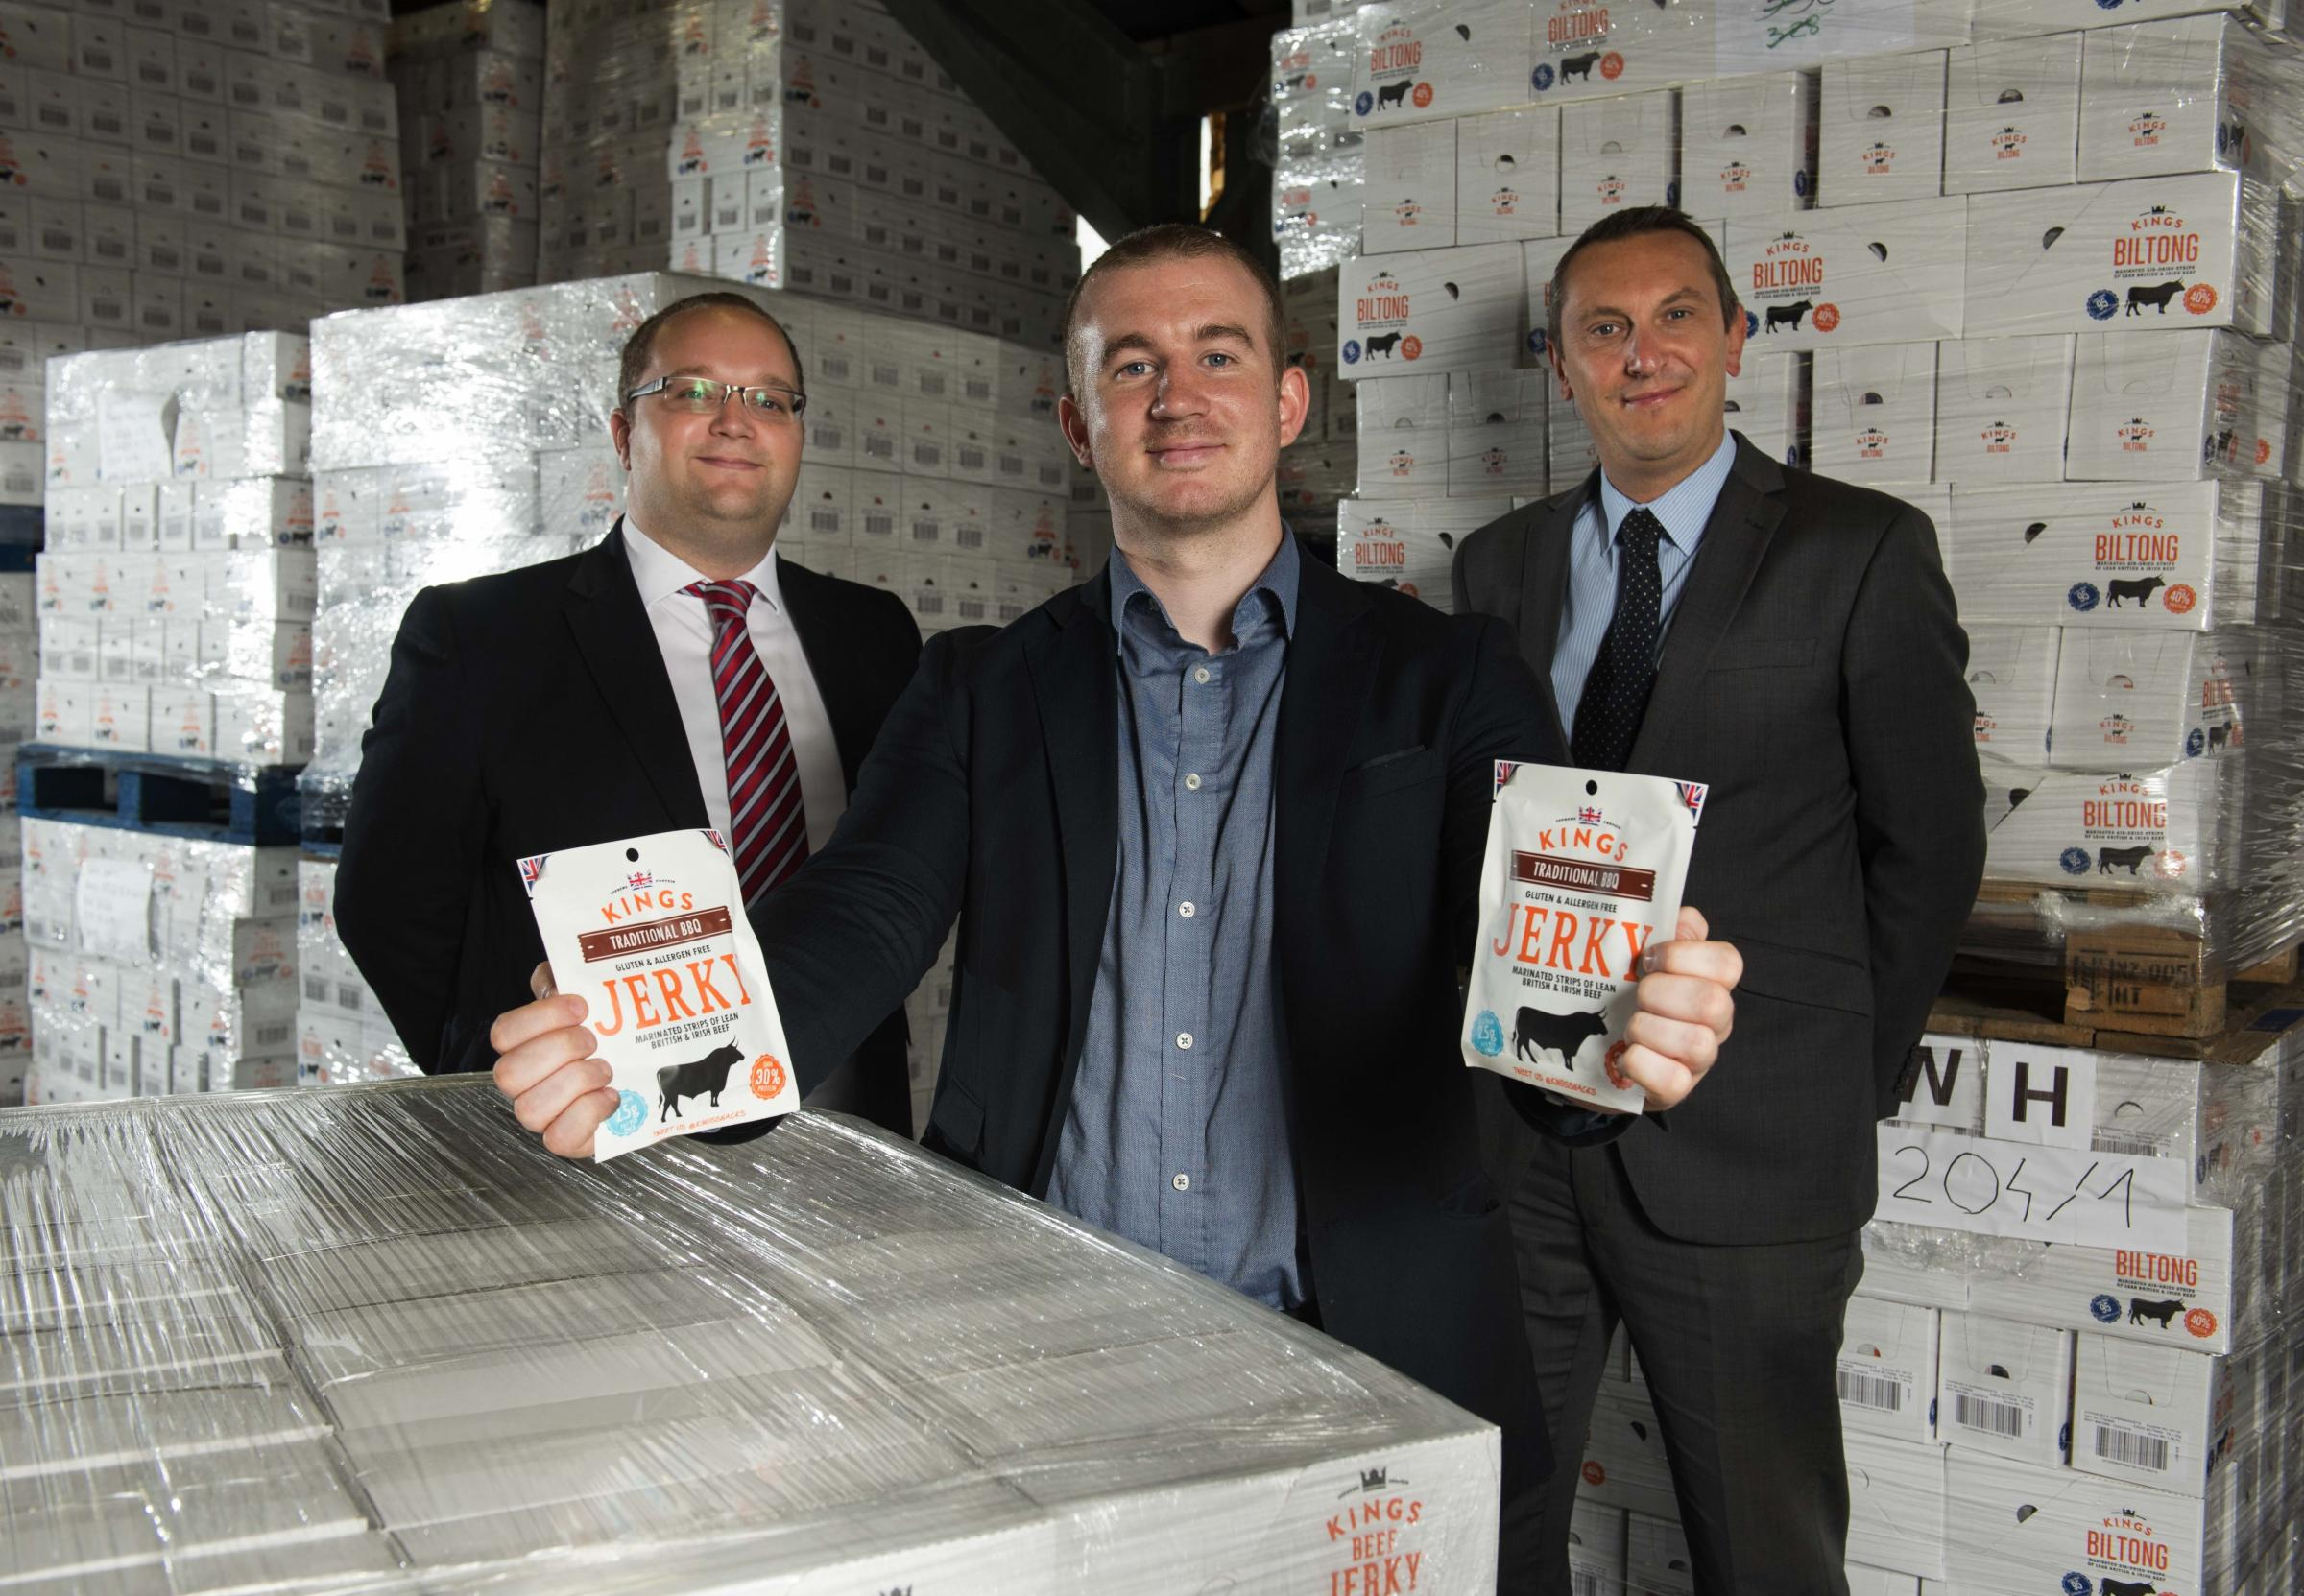 From left Stephen Smith, HSBC, Charlie Simpson-Daniel, Managing Director at New World Foods (Europe) and Julian Catchpole, HSBC